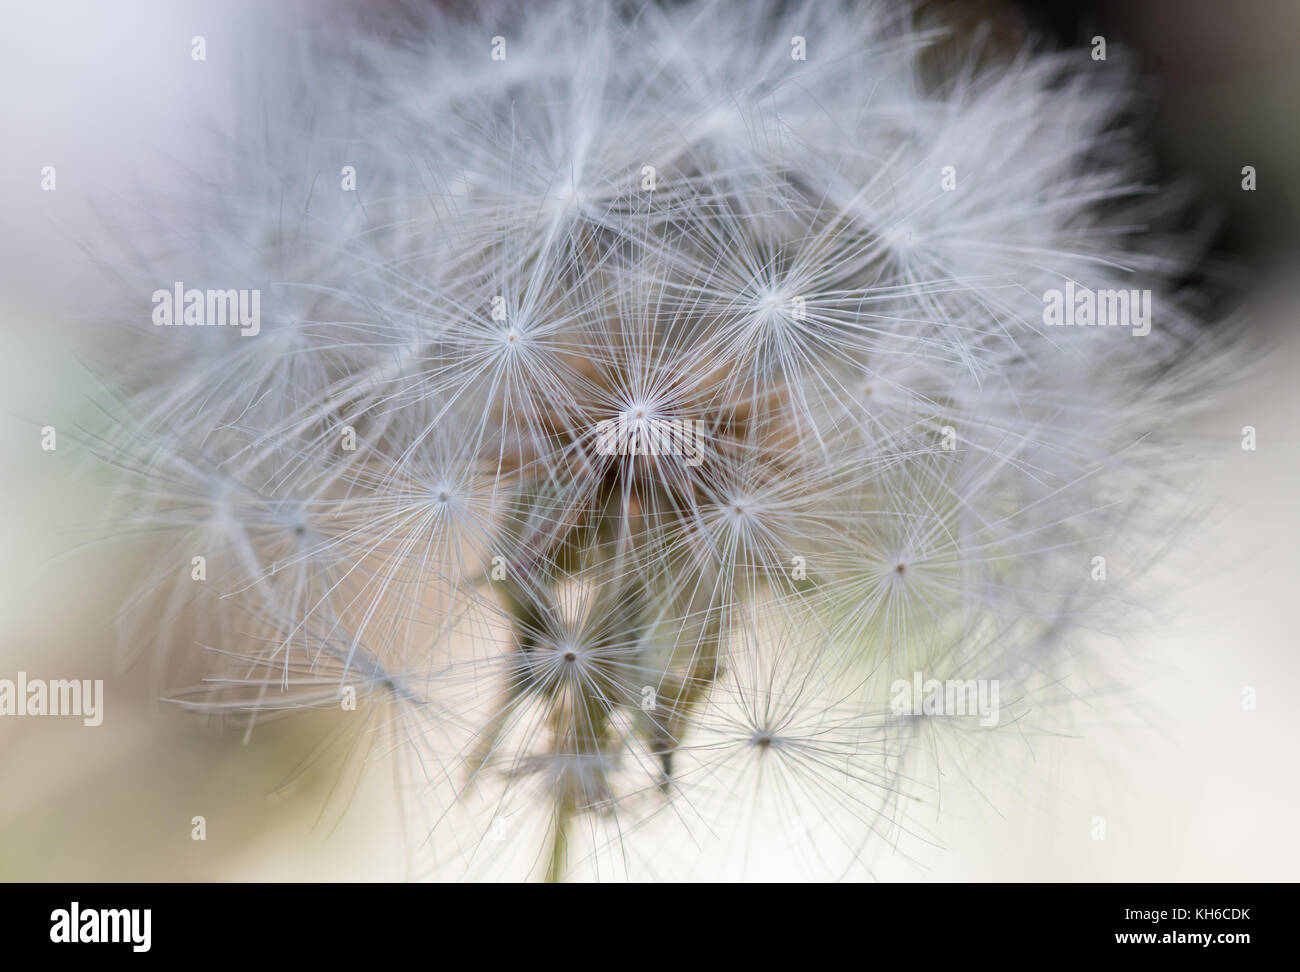 Close up of Large Dandelion Plant with selective focus technique - Stock Image